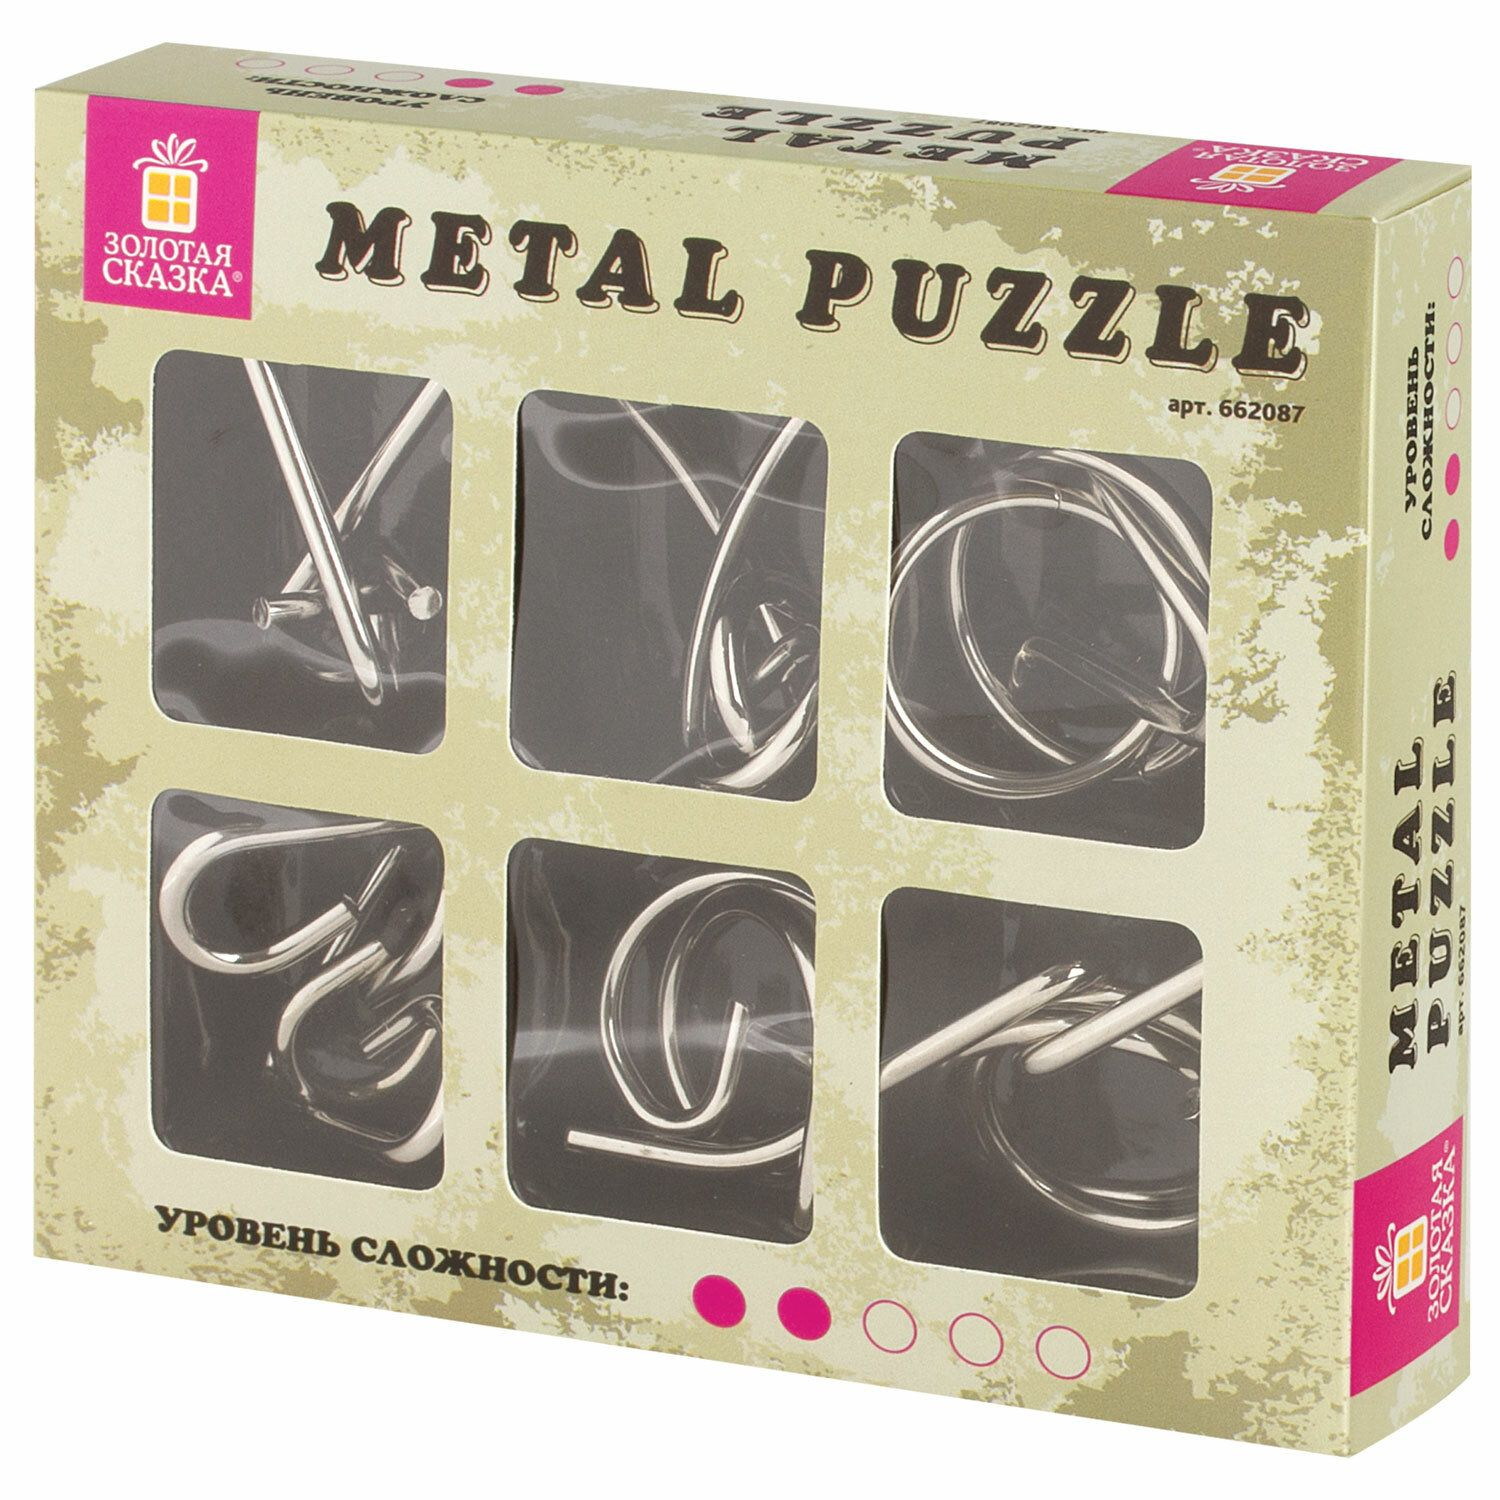 """GOLDEN FAIRY TALE / Metal puzzles (difficulty level """"BEGINNER""""), set of 6 pieces"""